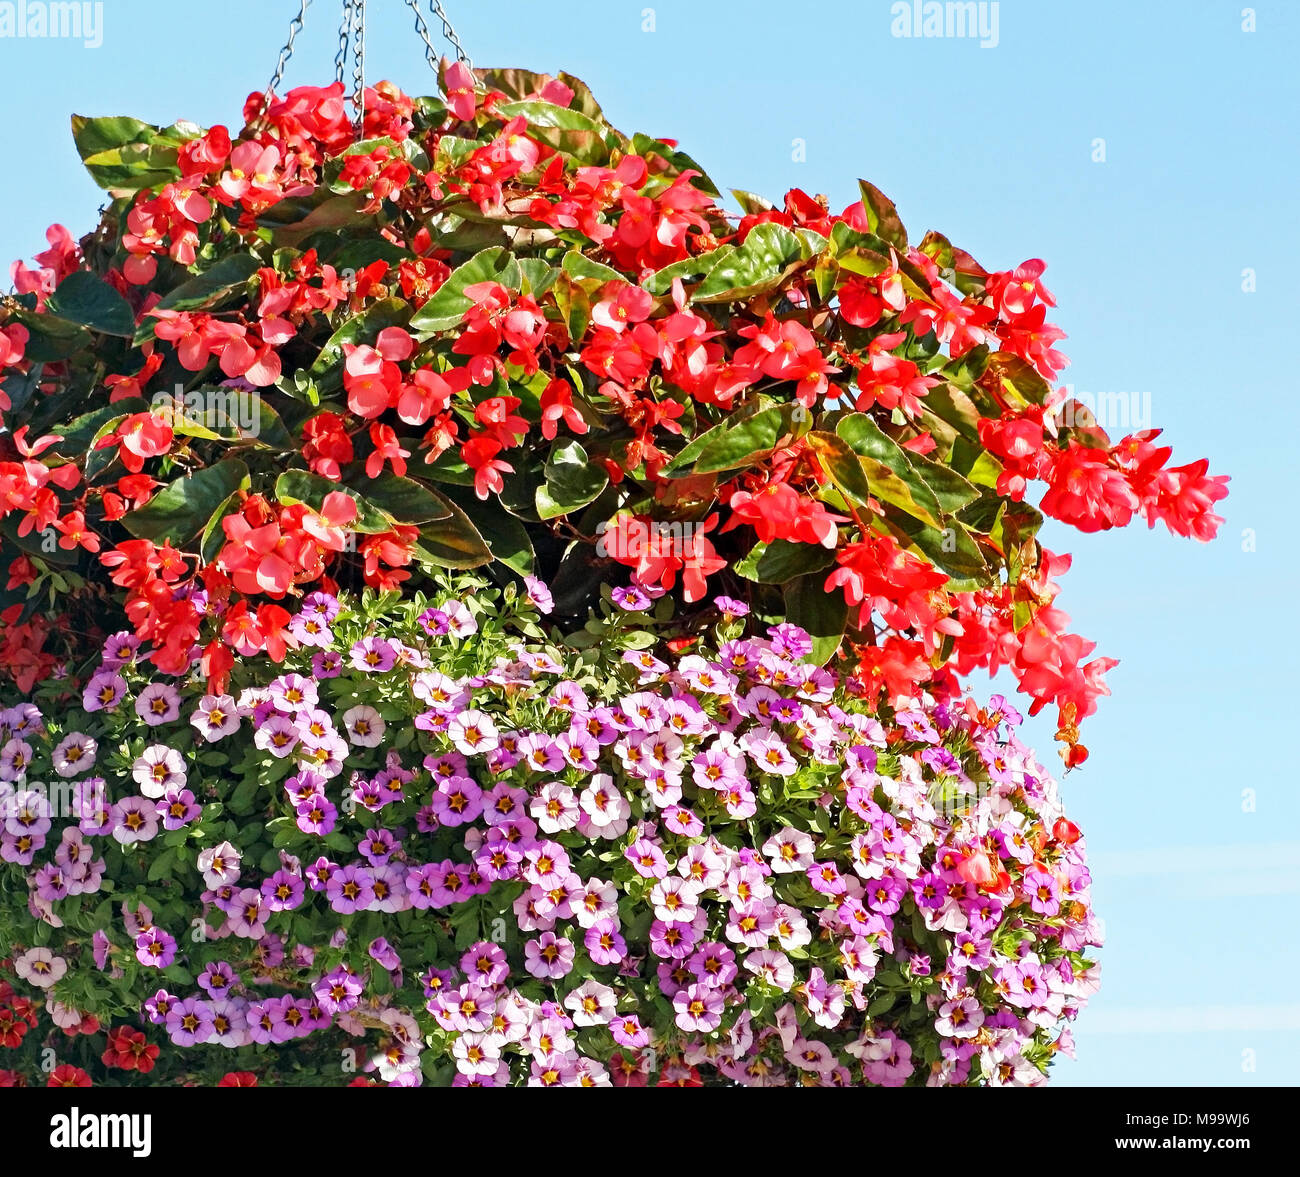 Beautiful hanging basket filled to overflowing with mini red and lavender colored Petunias - Stock Image